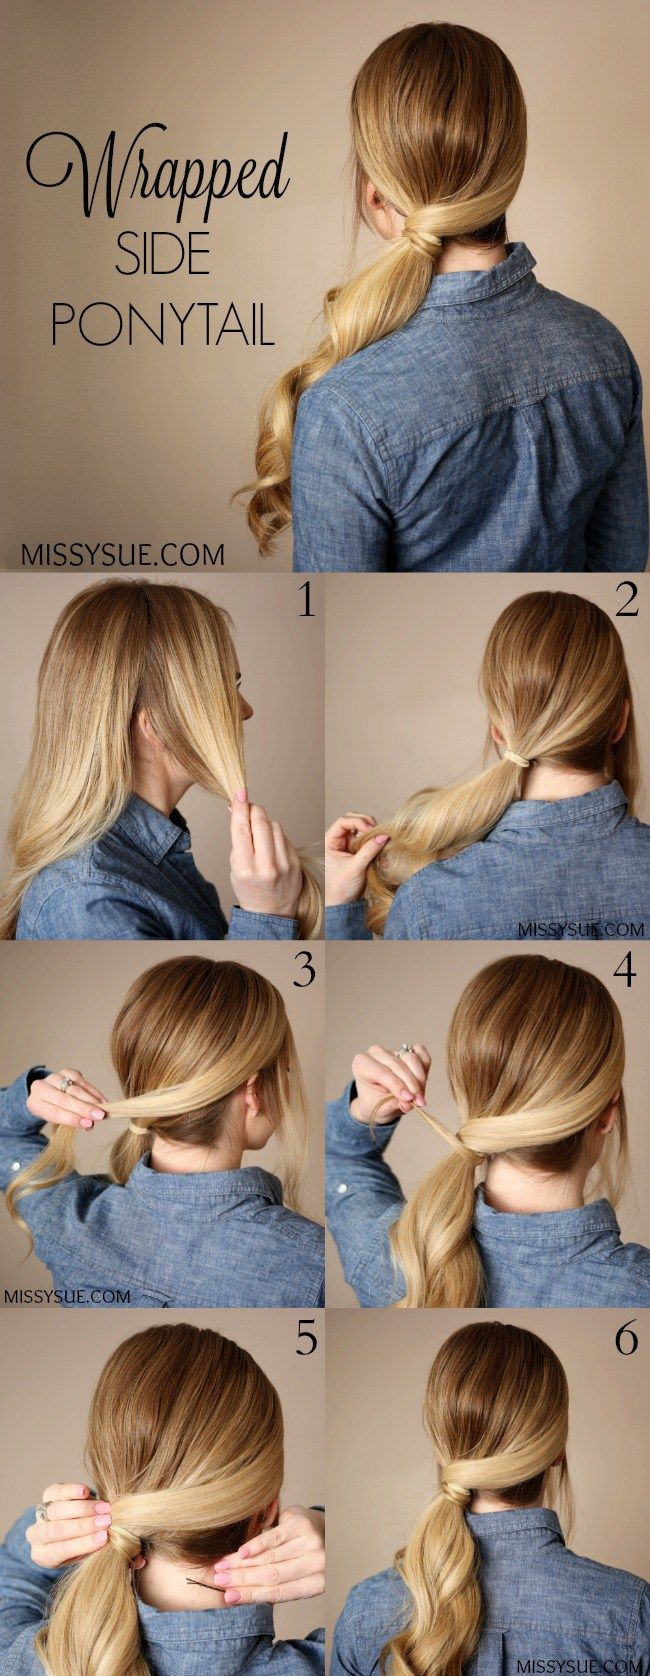 Wrapped Side Ponytail Missy Sue Side Ponytail Hairstyles Ponytail Hairstyles Tutorial Cute Ponytail Hairstyles